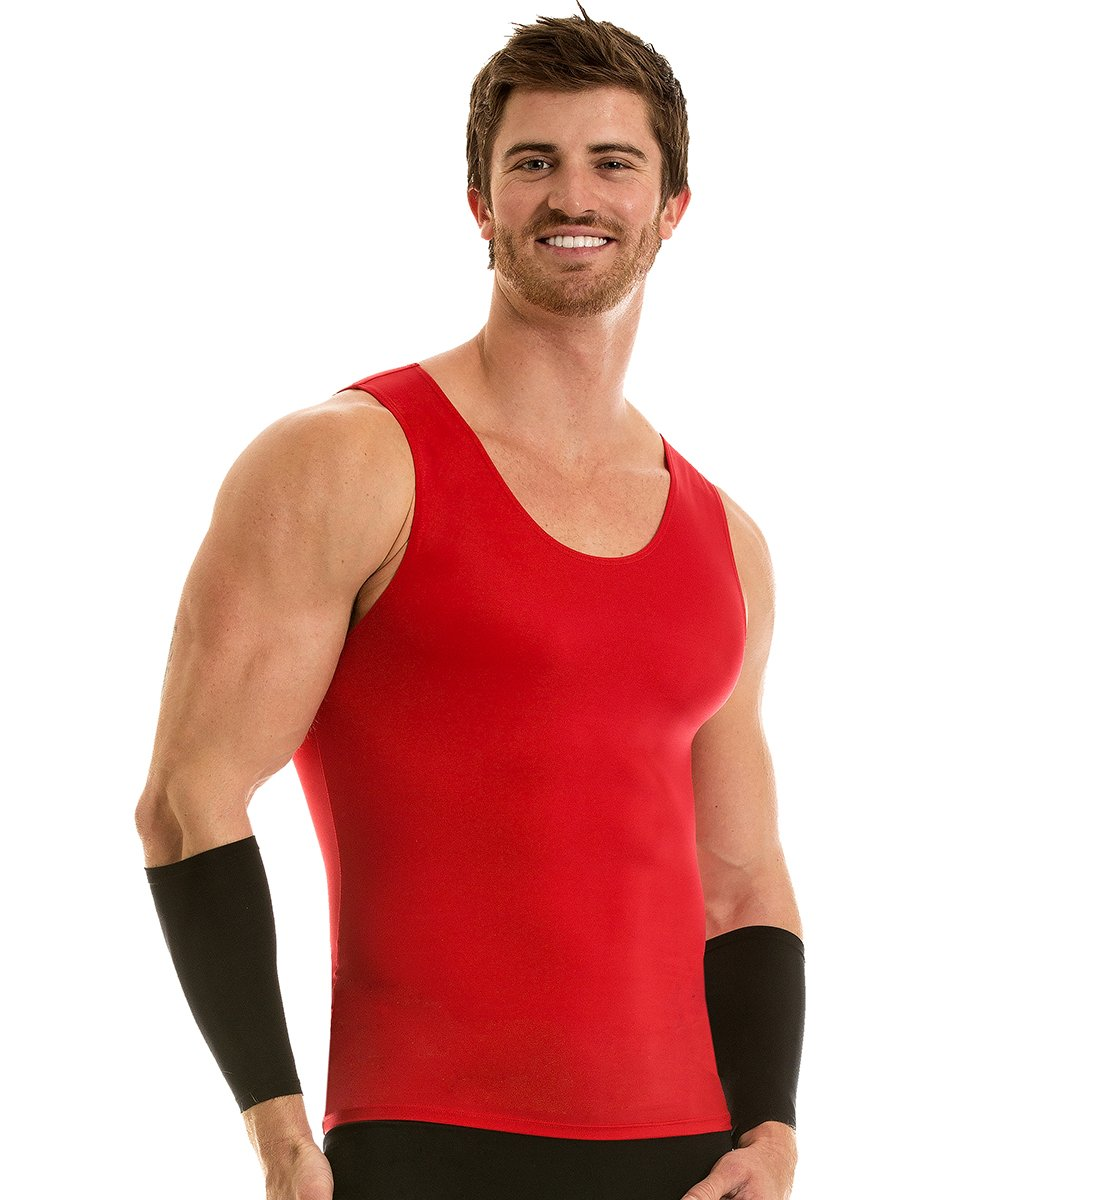 Insta Slim 3 Pack Muscle Tank, Look up to 5 inches Slimmer Instantly, Red, Medium, The Magic is in The Fabric! by Insta Slim (Image #3)